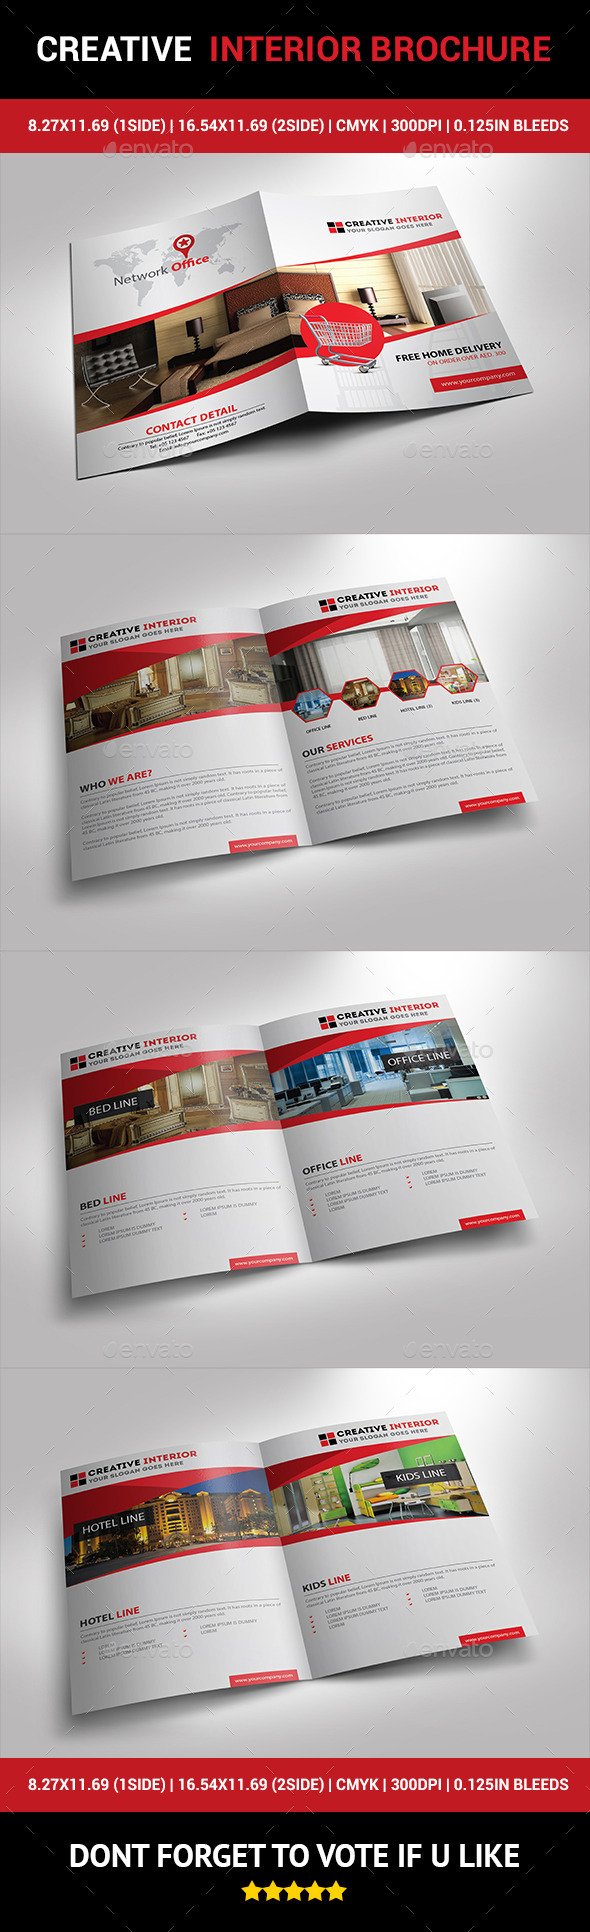 Creative Interior Brochure